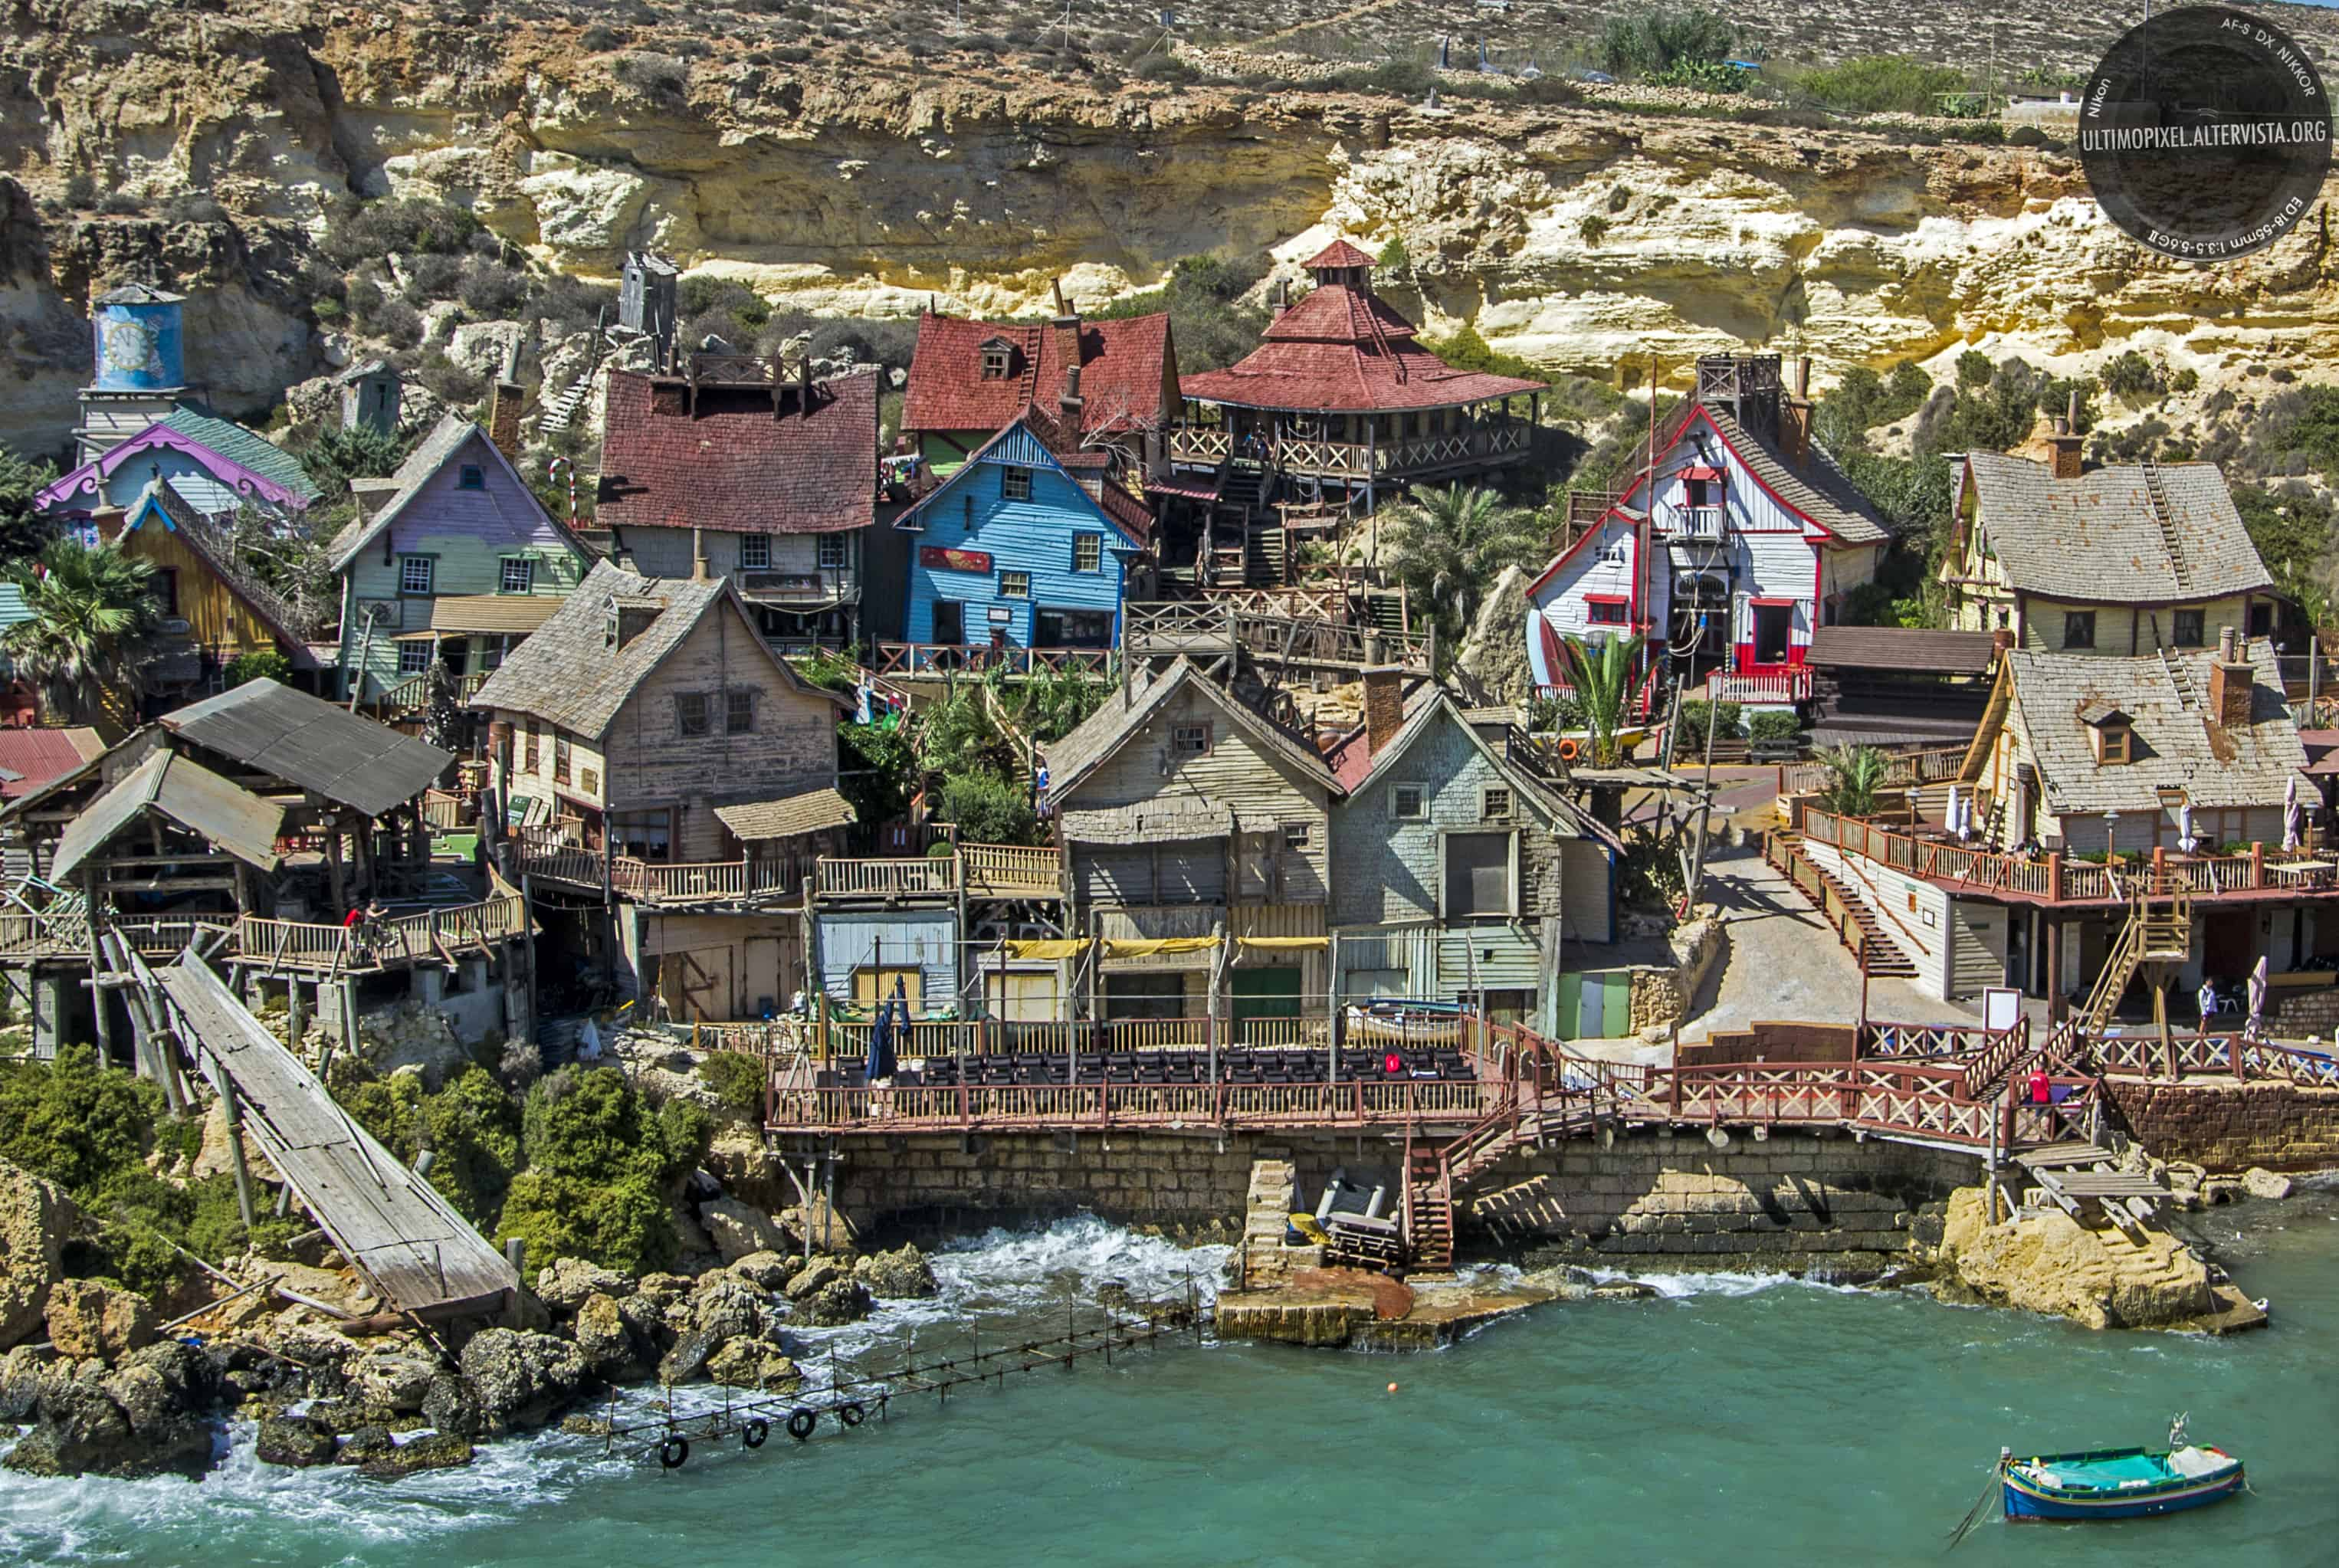 Popeye Village in Mellieha